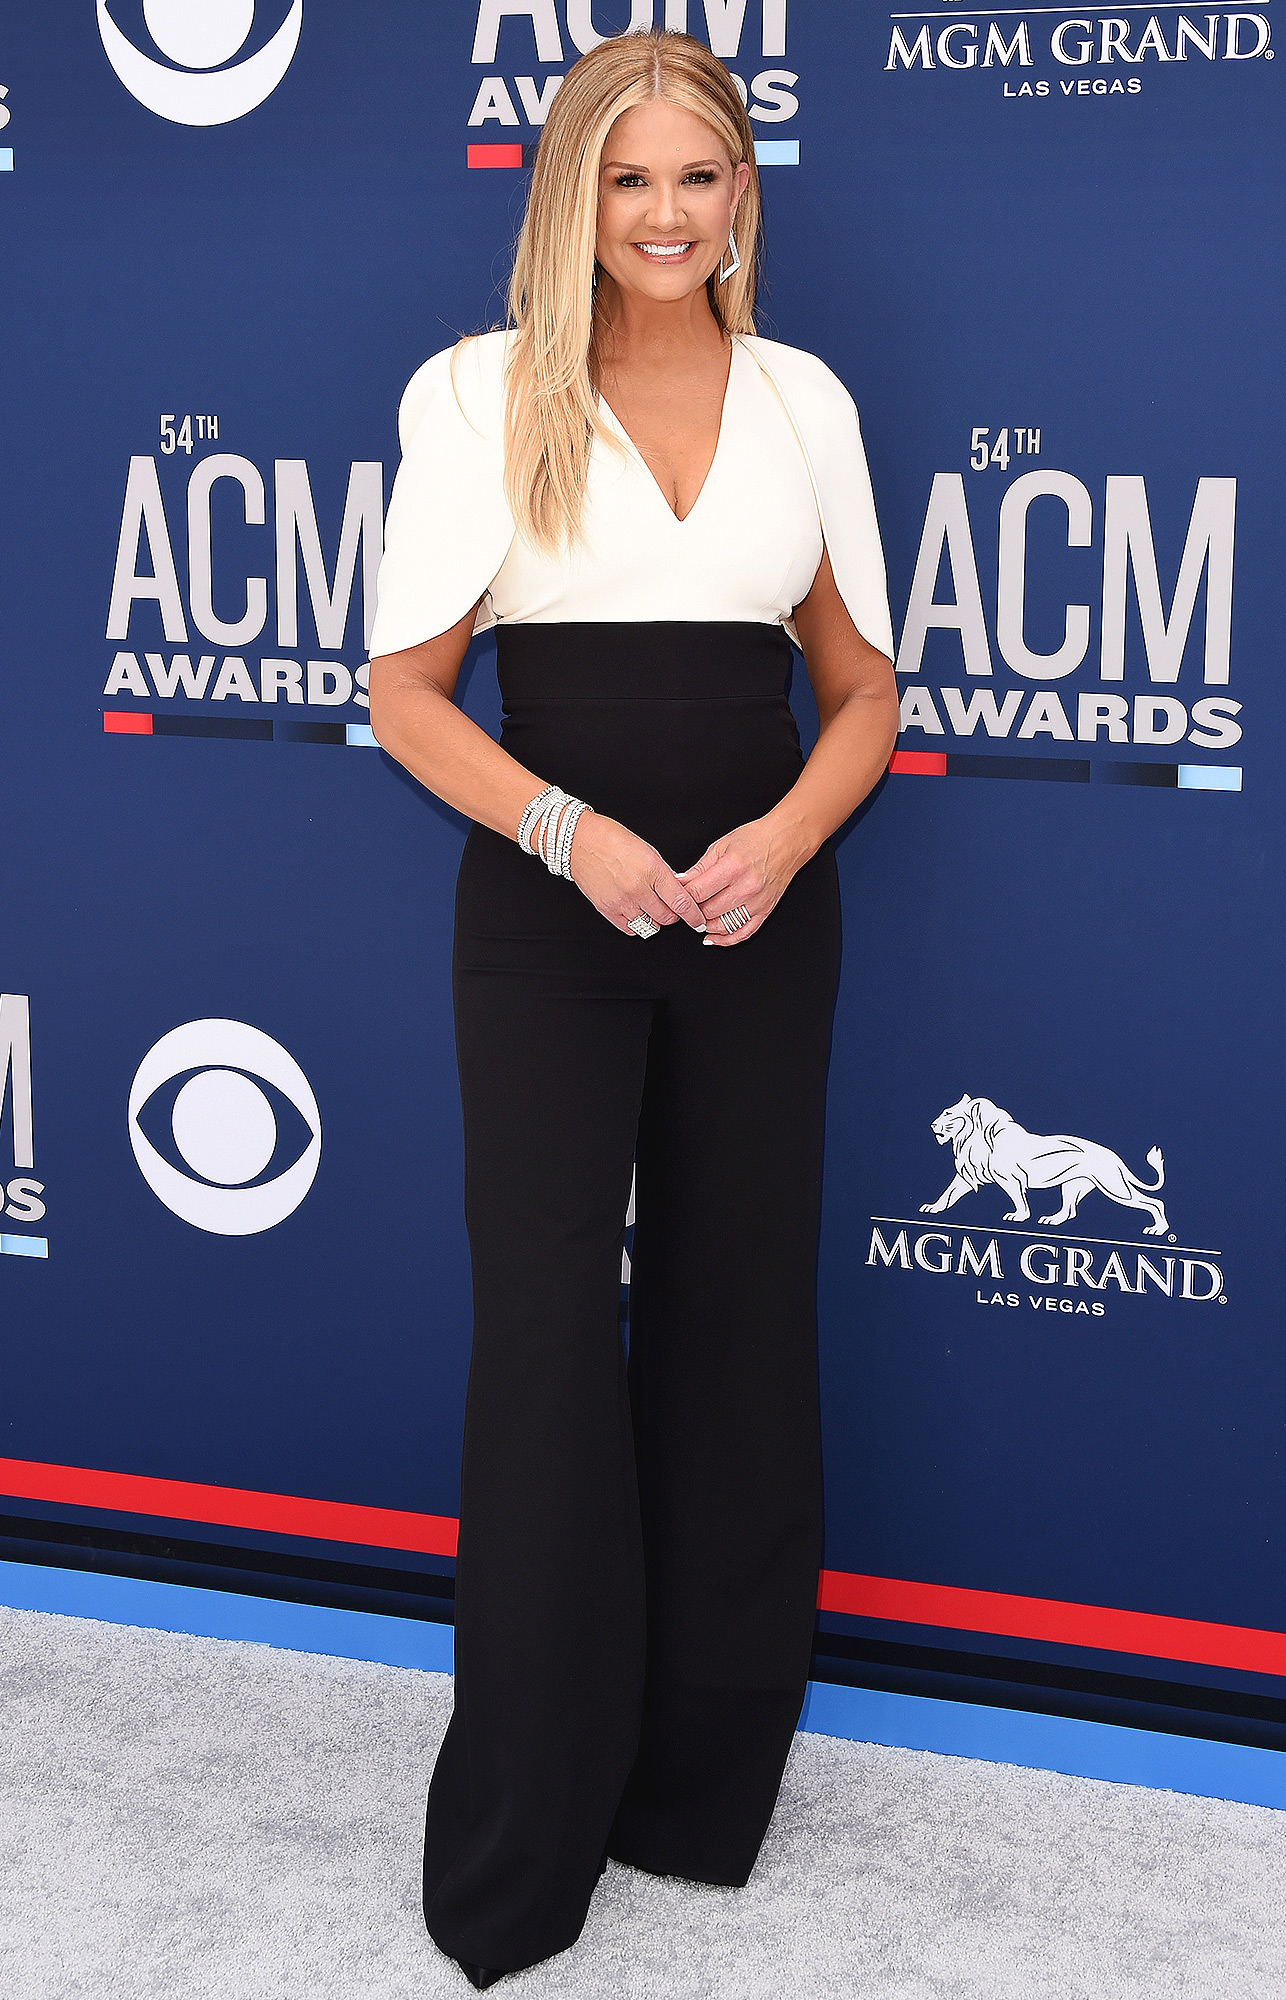 54th Annual ACM Awards, Arrivals, Grand Garden Arena, Las Vegas, USA - 07 Apr 2019